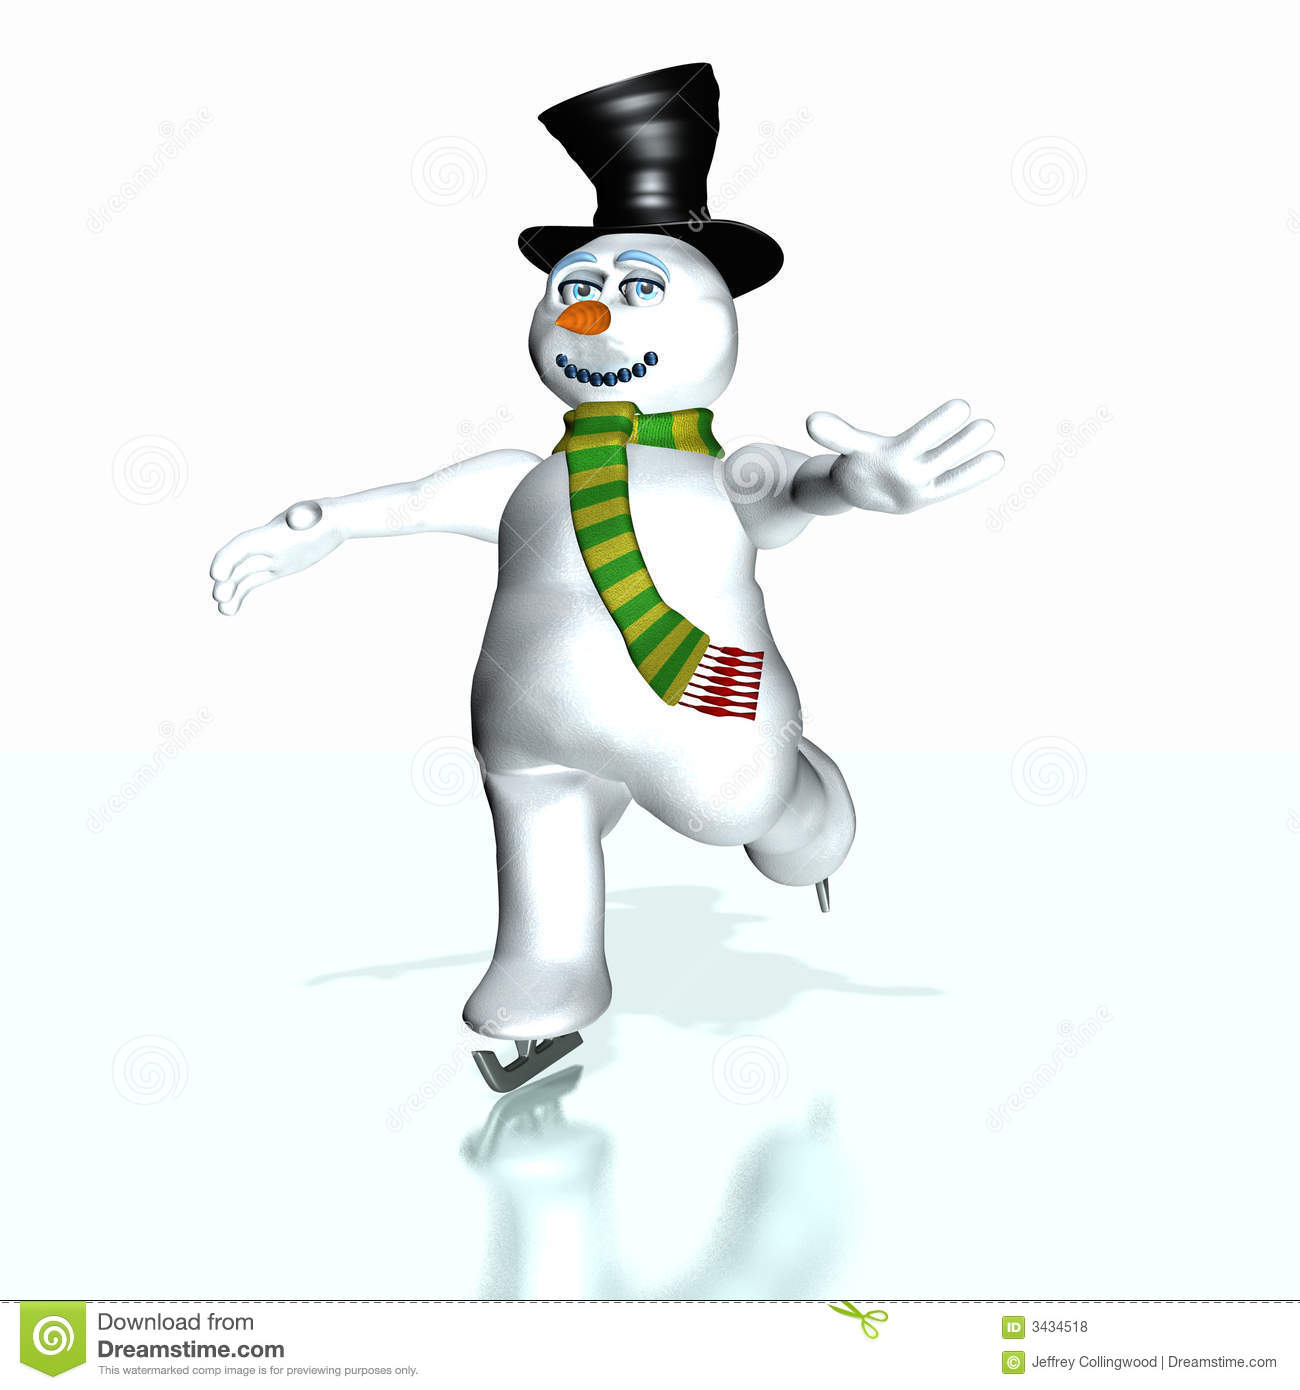 Snowman with a carrot nose and a moutn made of coal skating on ice.